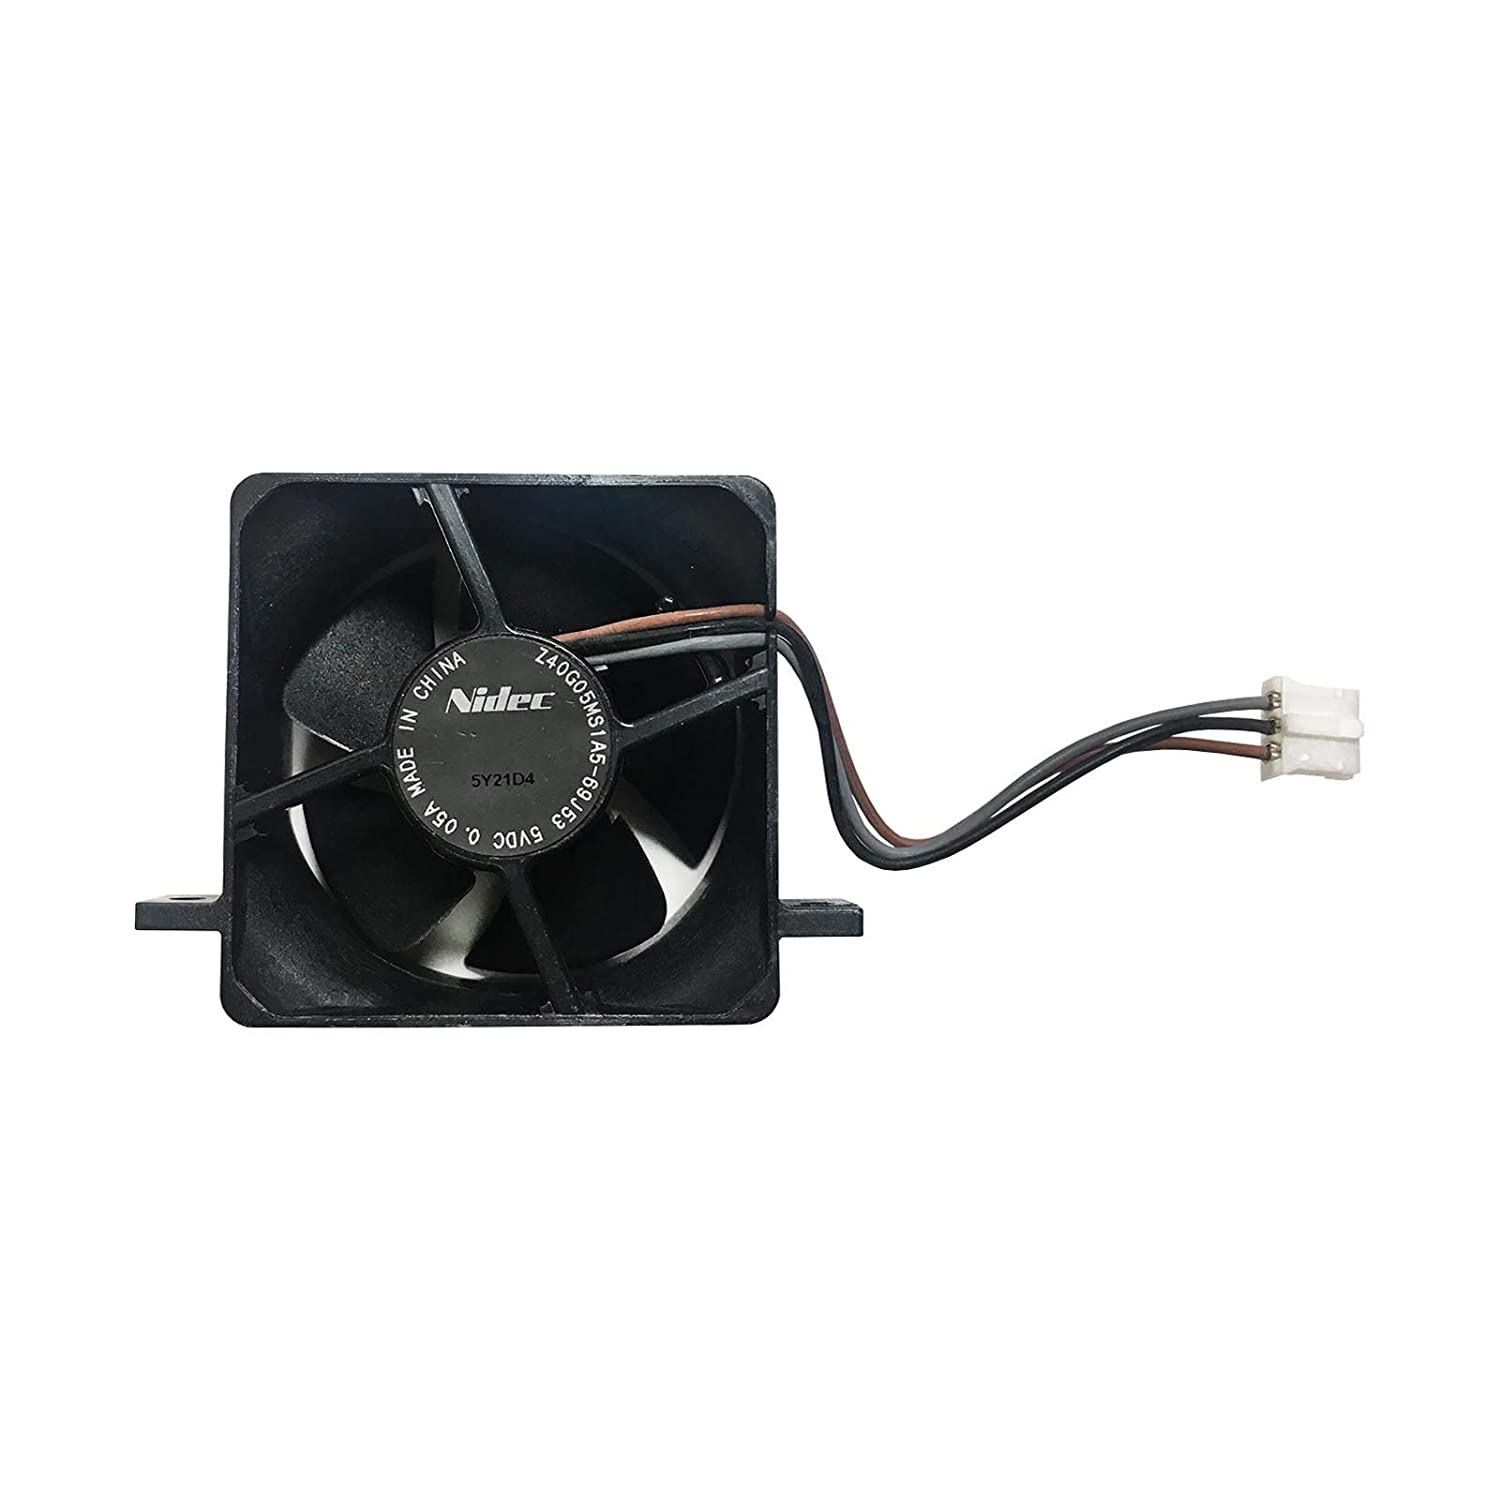 Rinbers Replacement Internal CPU Cool Cooling Fan Replacement Part for Nintendo Wii U Console